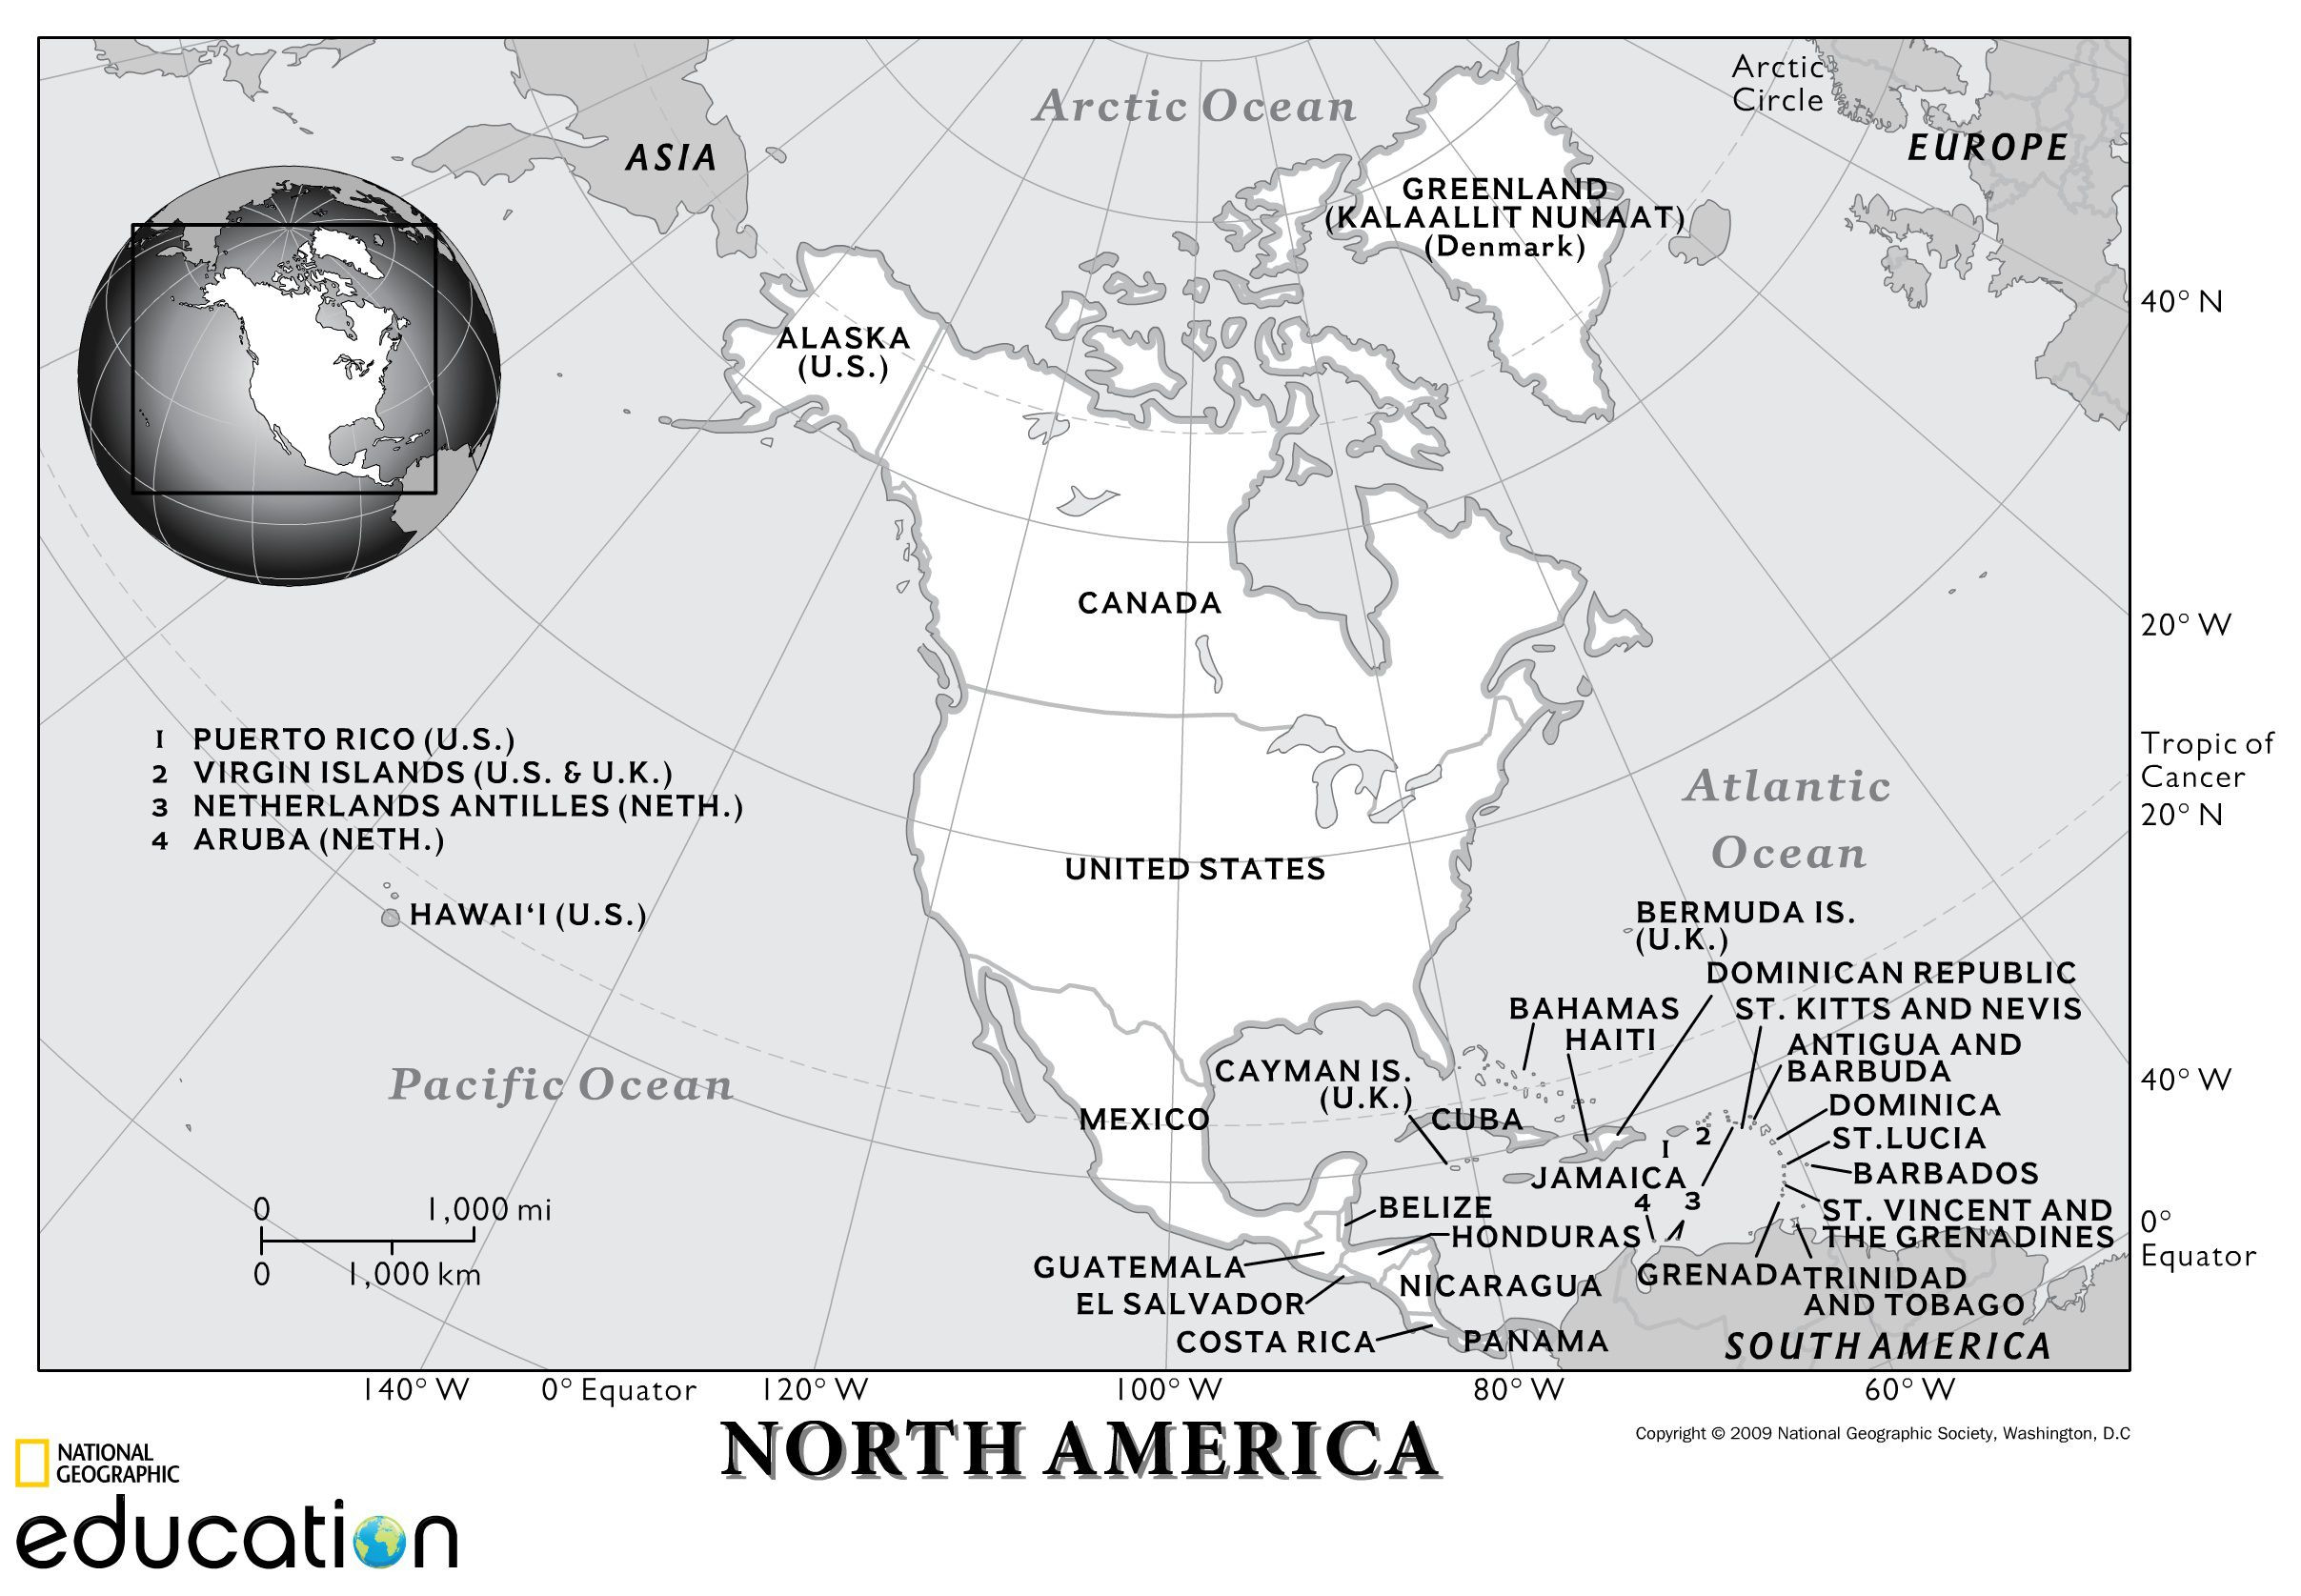 7th Grade Geography Worksheets north America Physical Geography